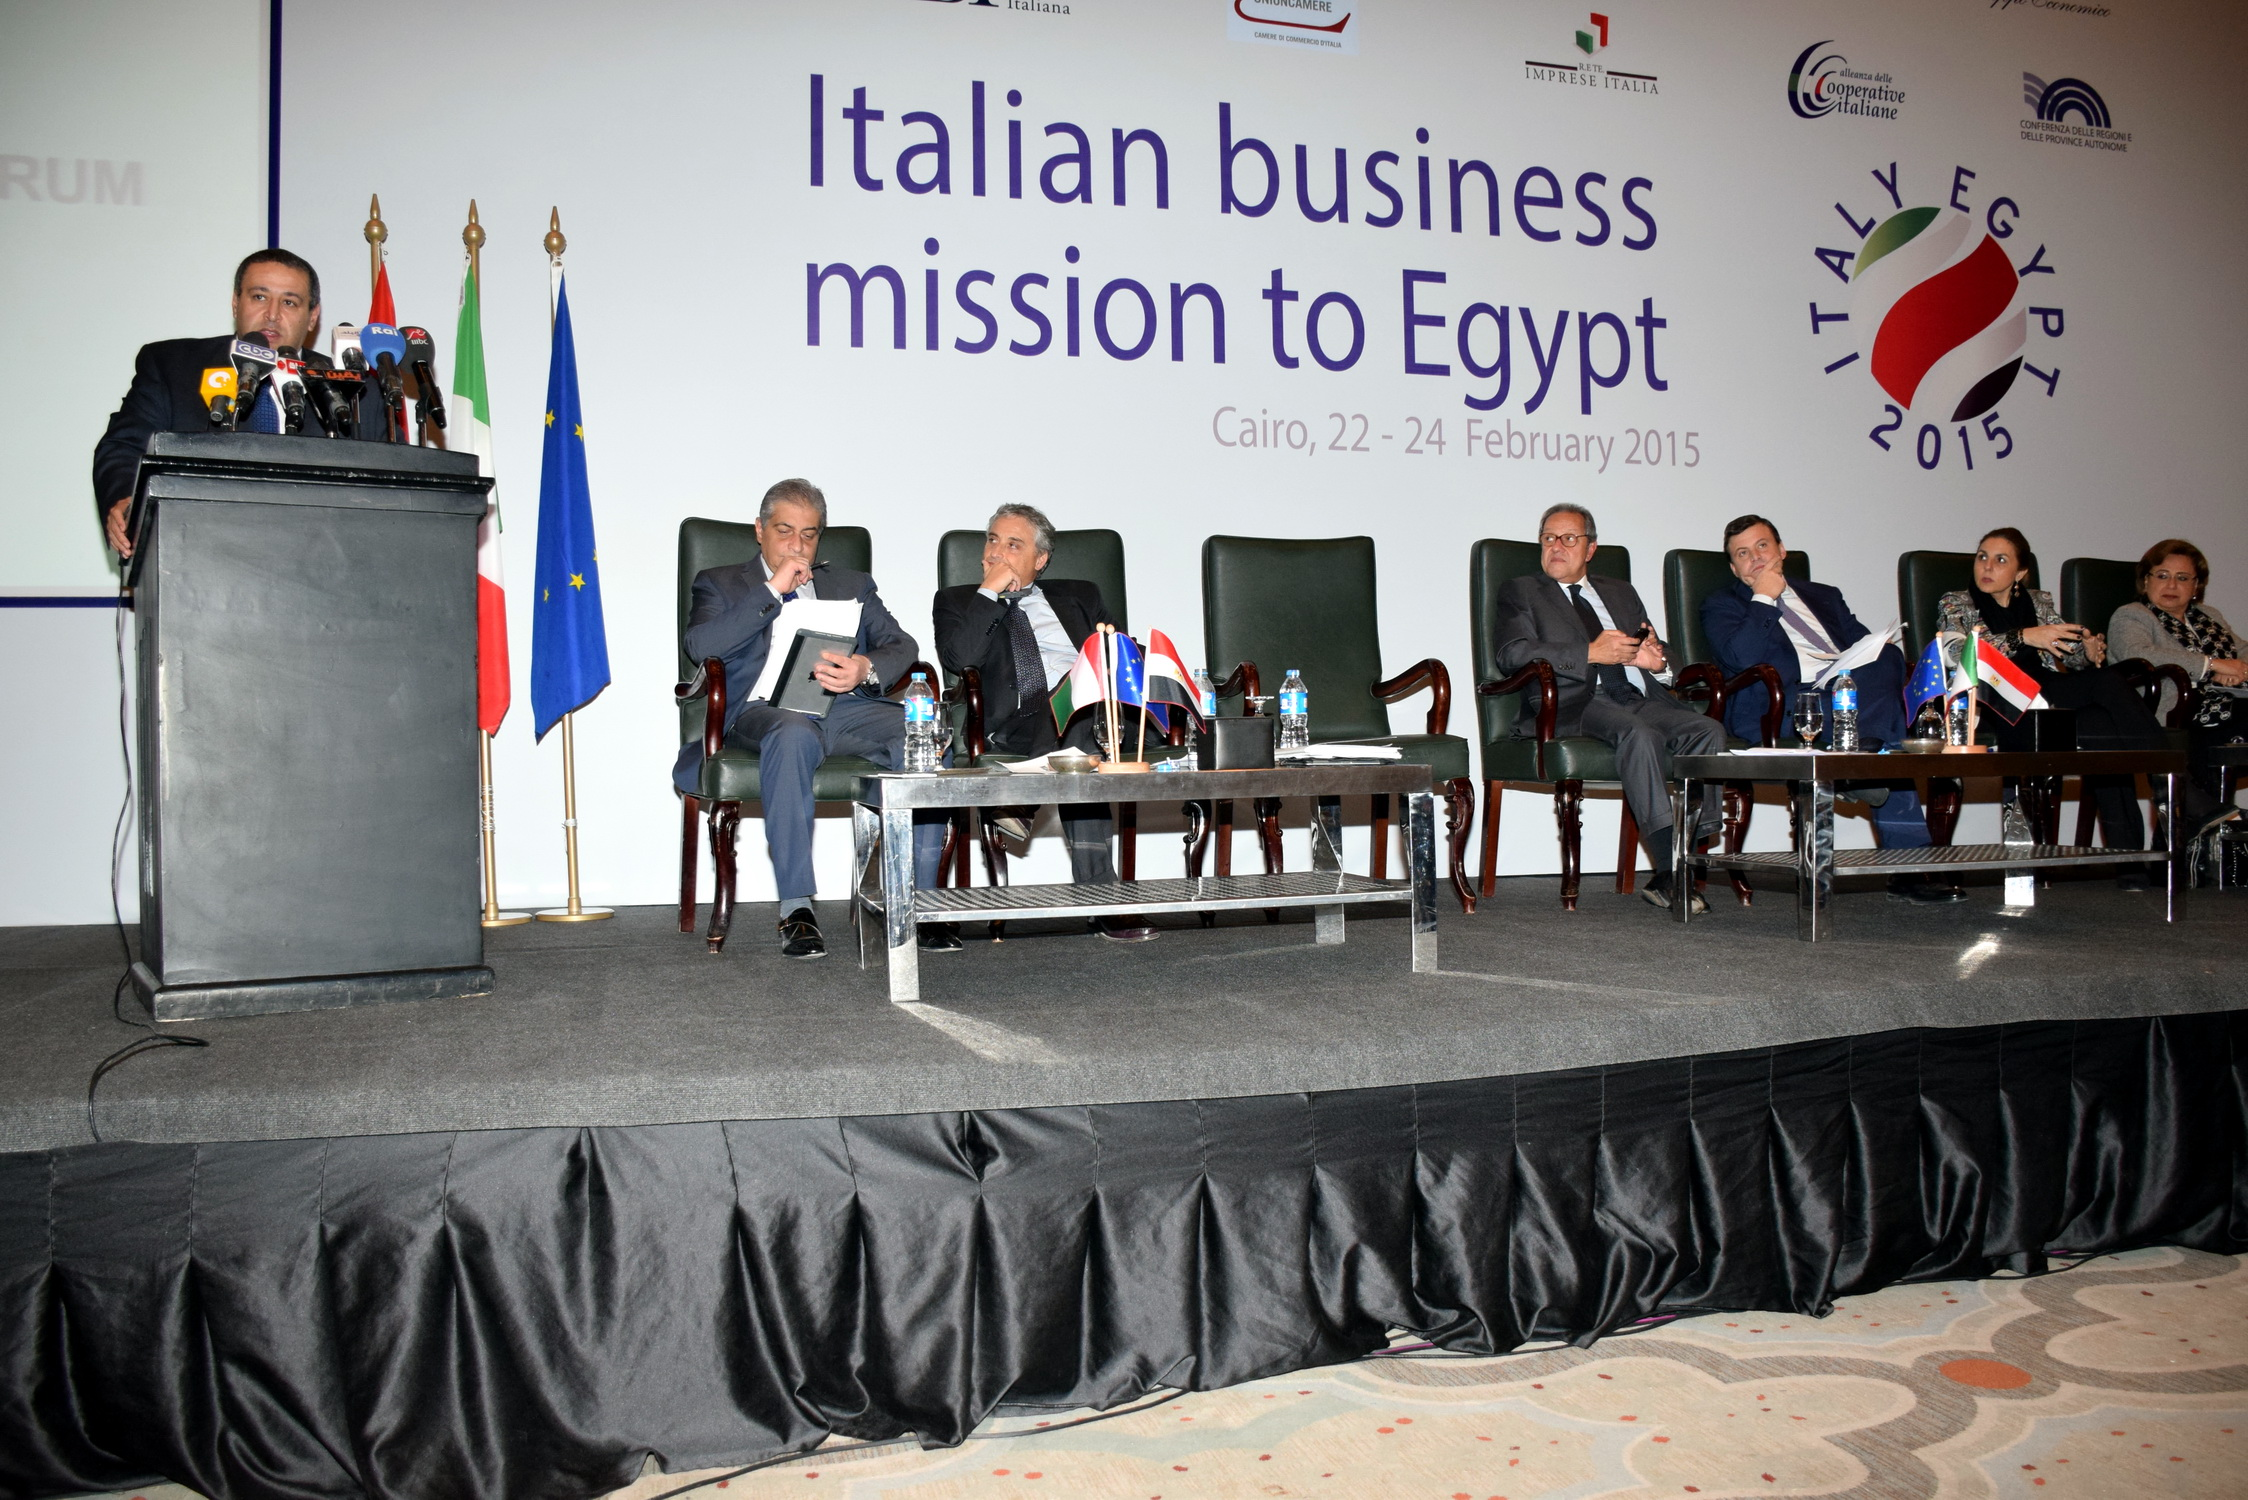 Memebers of he Italian-Egyptian Business Council in Cairo on Monday, which saw the participation of approximately 100 companies, that Italy is one of Egypt's biggest trade partners (DNE Photo)